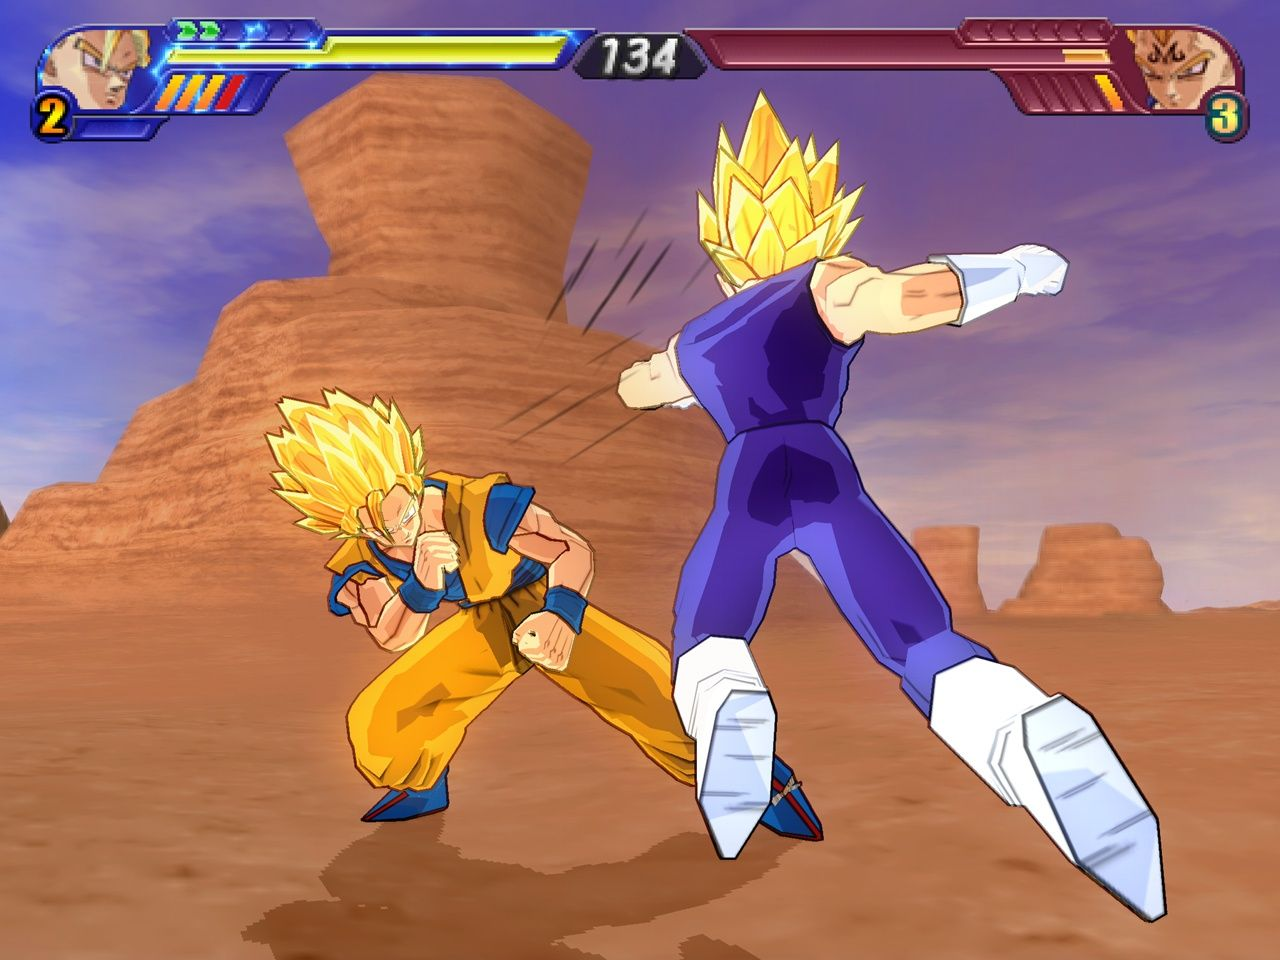 Dragon Ball Z Budokai Tenkaichi 3 Ps2 Version Review In 2021 Dragon Ball Z Dragon Ball Fighting Poses